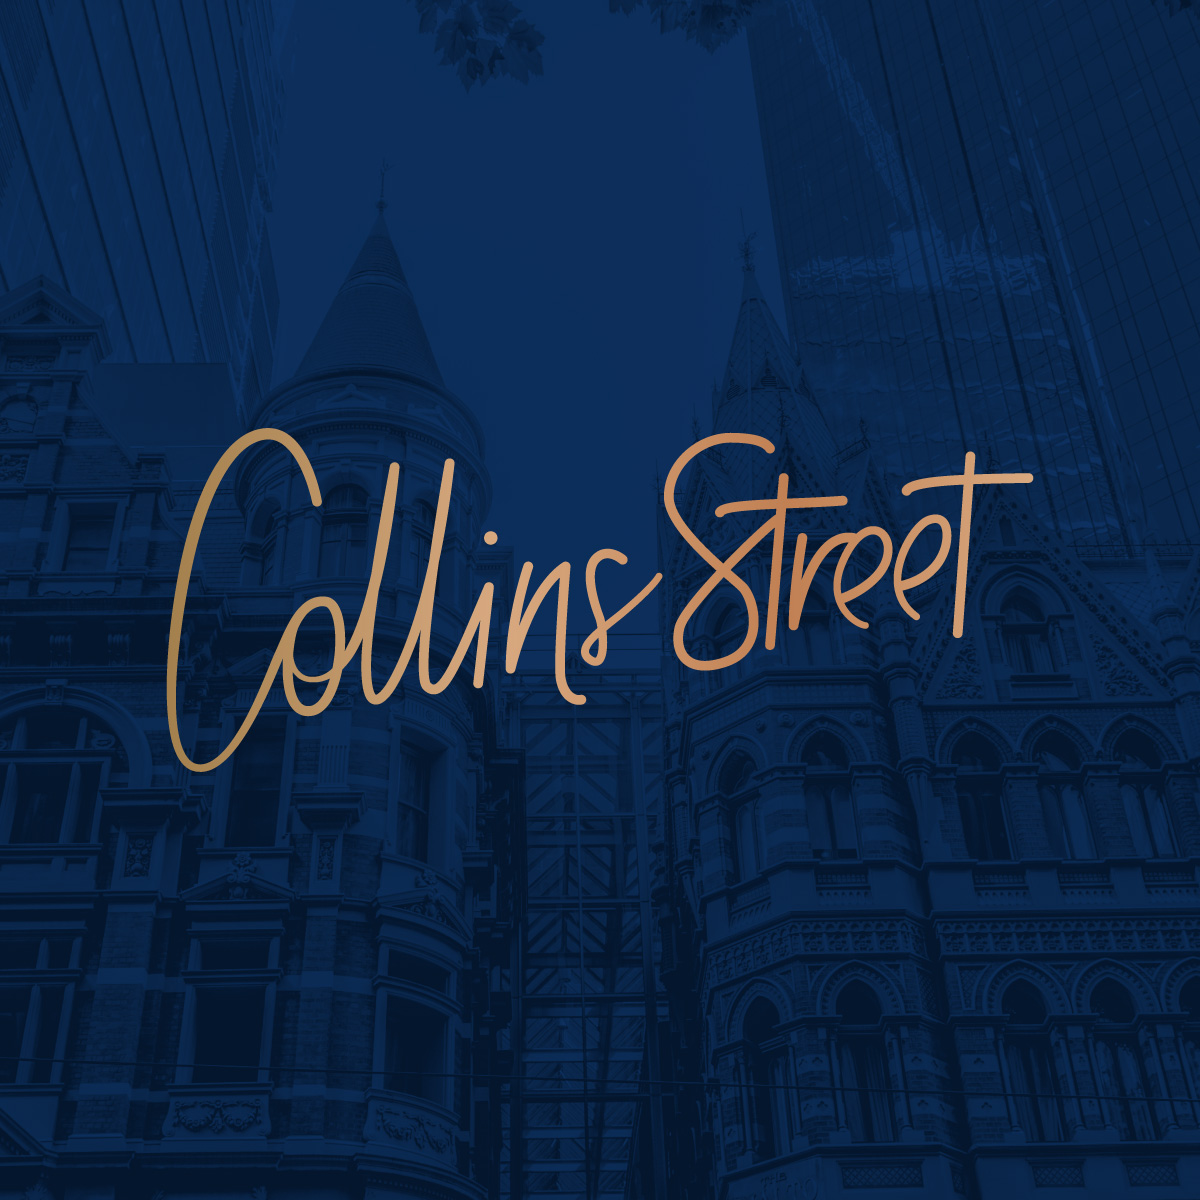 Collins Street Competitive Strategy & Mentoring